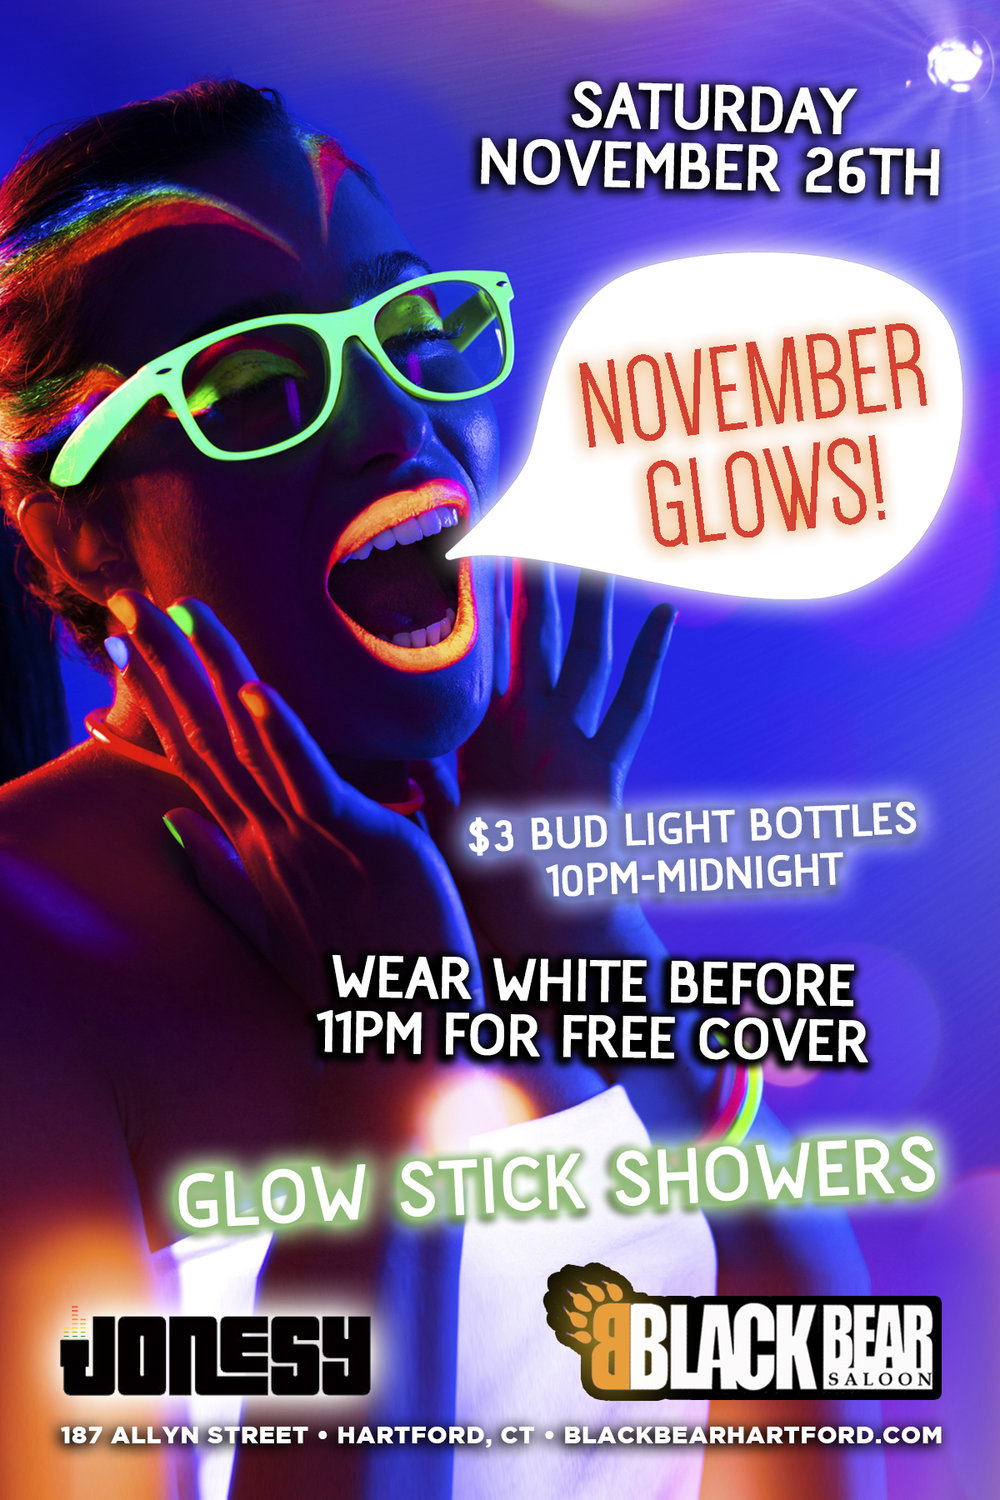 SATURDAY, NOVEMBER 26TH JOIN US AT BLACK BEAR SALOON IN HARTFORD, CT FOR THEIR MONTHLY GLOW PARTY!  MUSIC BY JONESY STARTS AT 9:30PM.  BE SURE TO WEAR WHITE FOR FREE COVER BEFORE 11PM.  $3 BUD LIGHT BOTTLES 10PM-MIDNIGHT!!  #WETHROWTHEPARTY